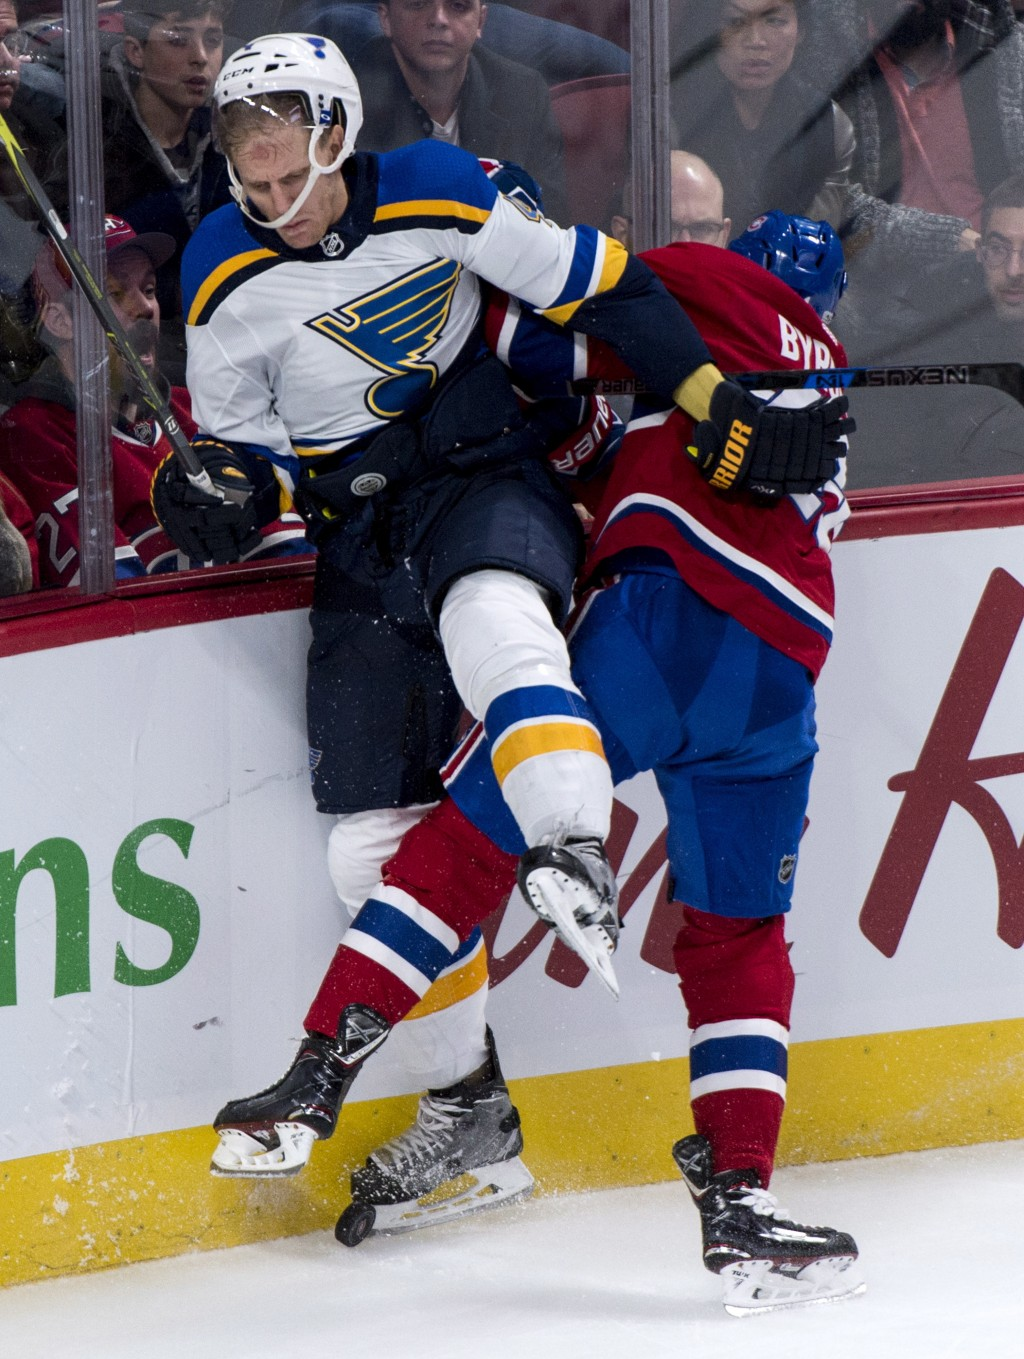 St. Louis Blues' Carl Gunnarsson, left, is checked into the boards by Montreal Canadiens' Paul Byron during the third period of an NHL hockey game, Tu